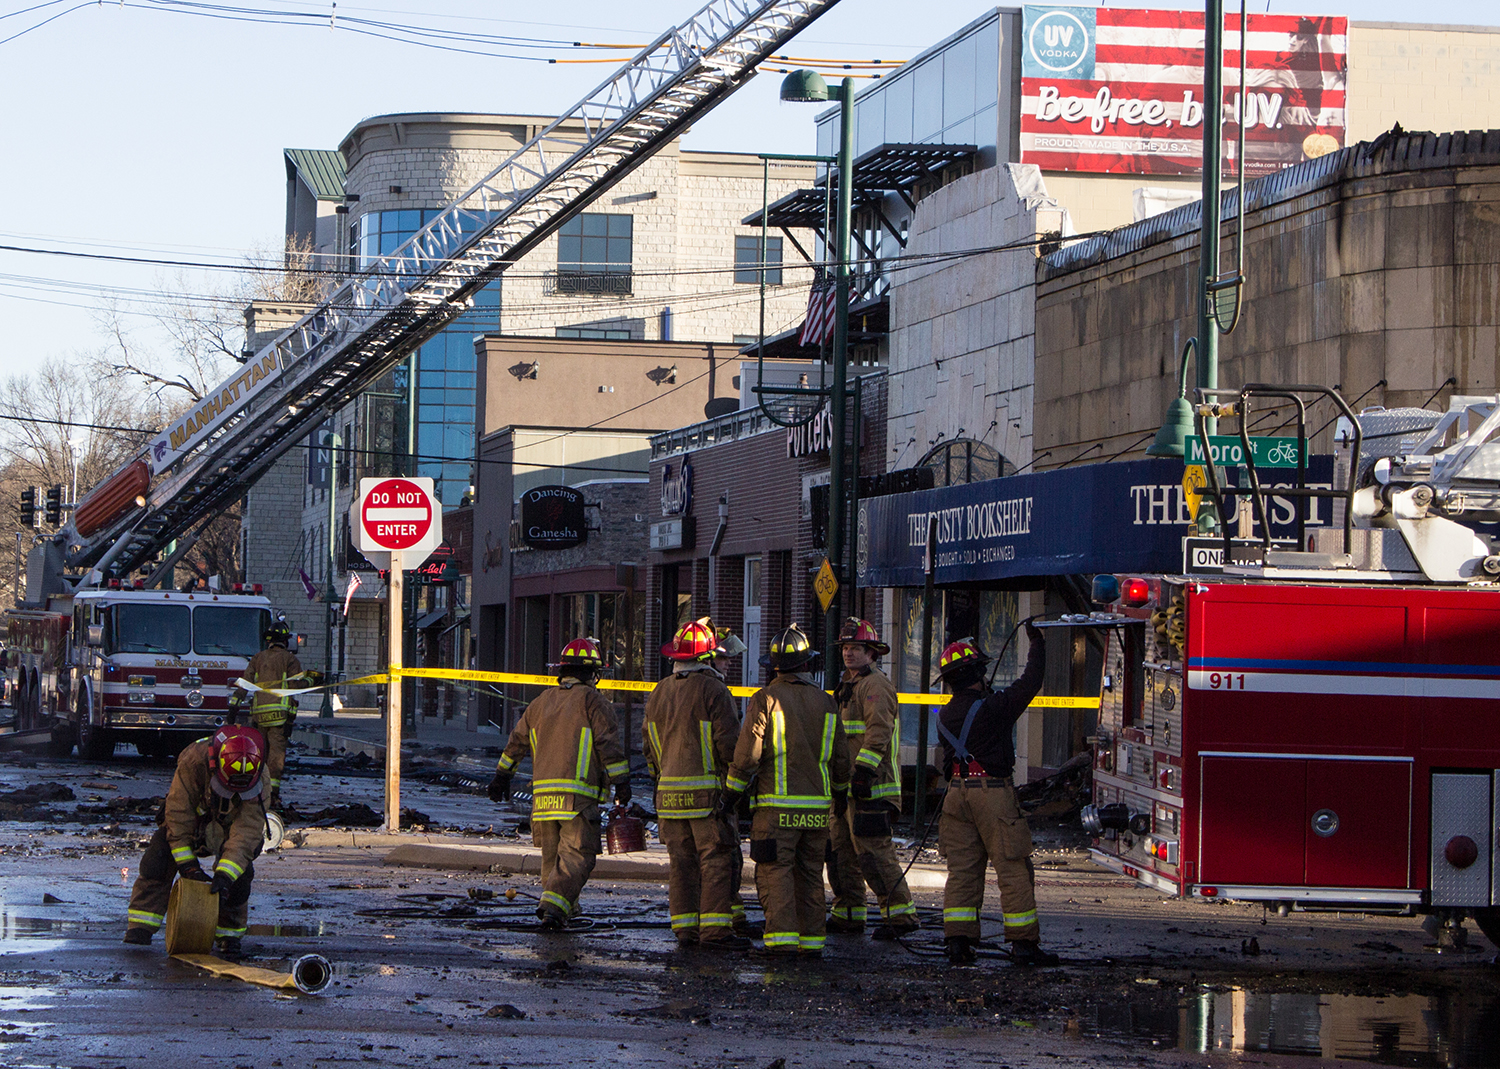 The Fire At Dusty Bookshelf Was Started By Flammable Wood Stain According To Store Owner Diane Meredith Regan Tokos